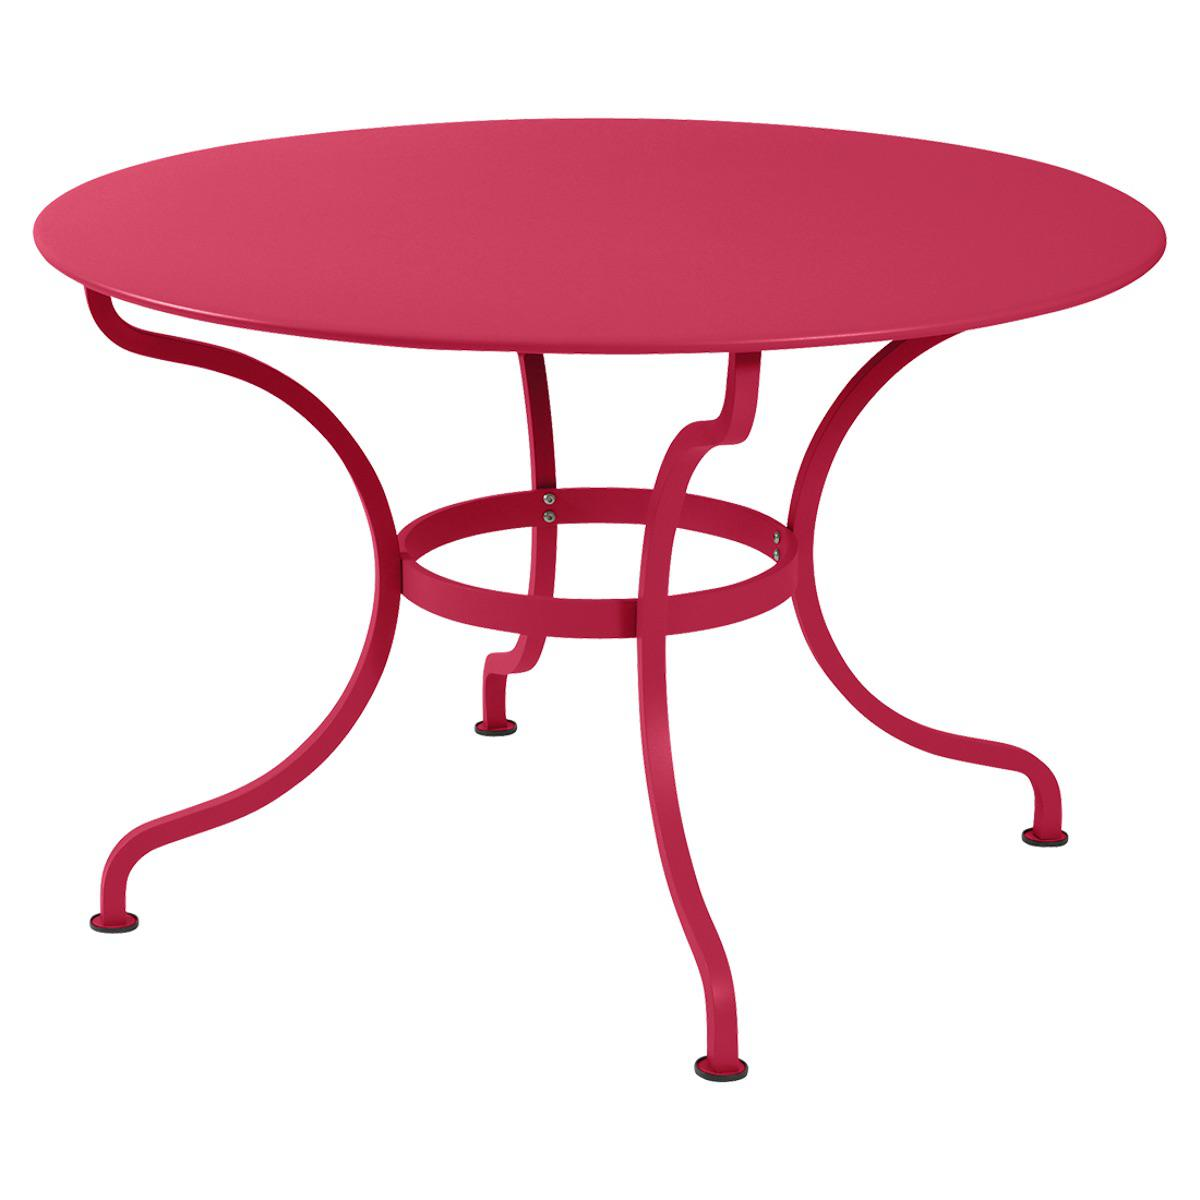 Table ronde 117cm ROMANE Fermob rose prlaine